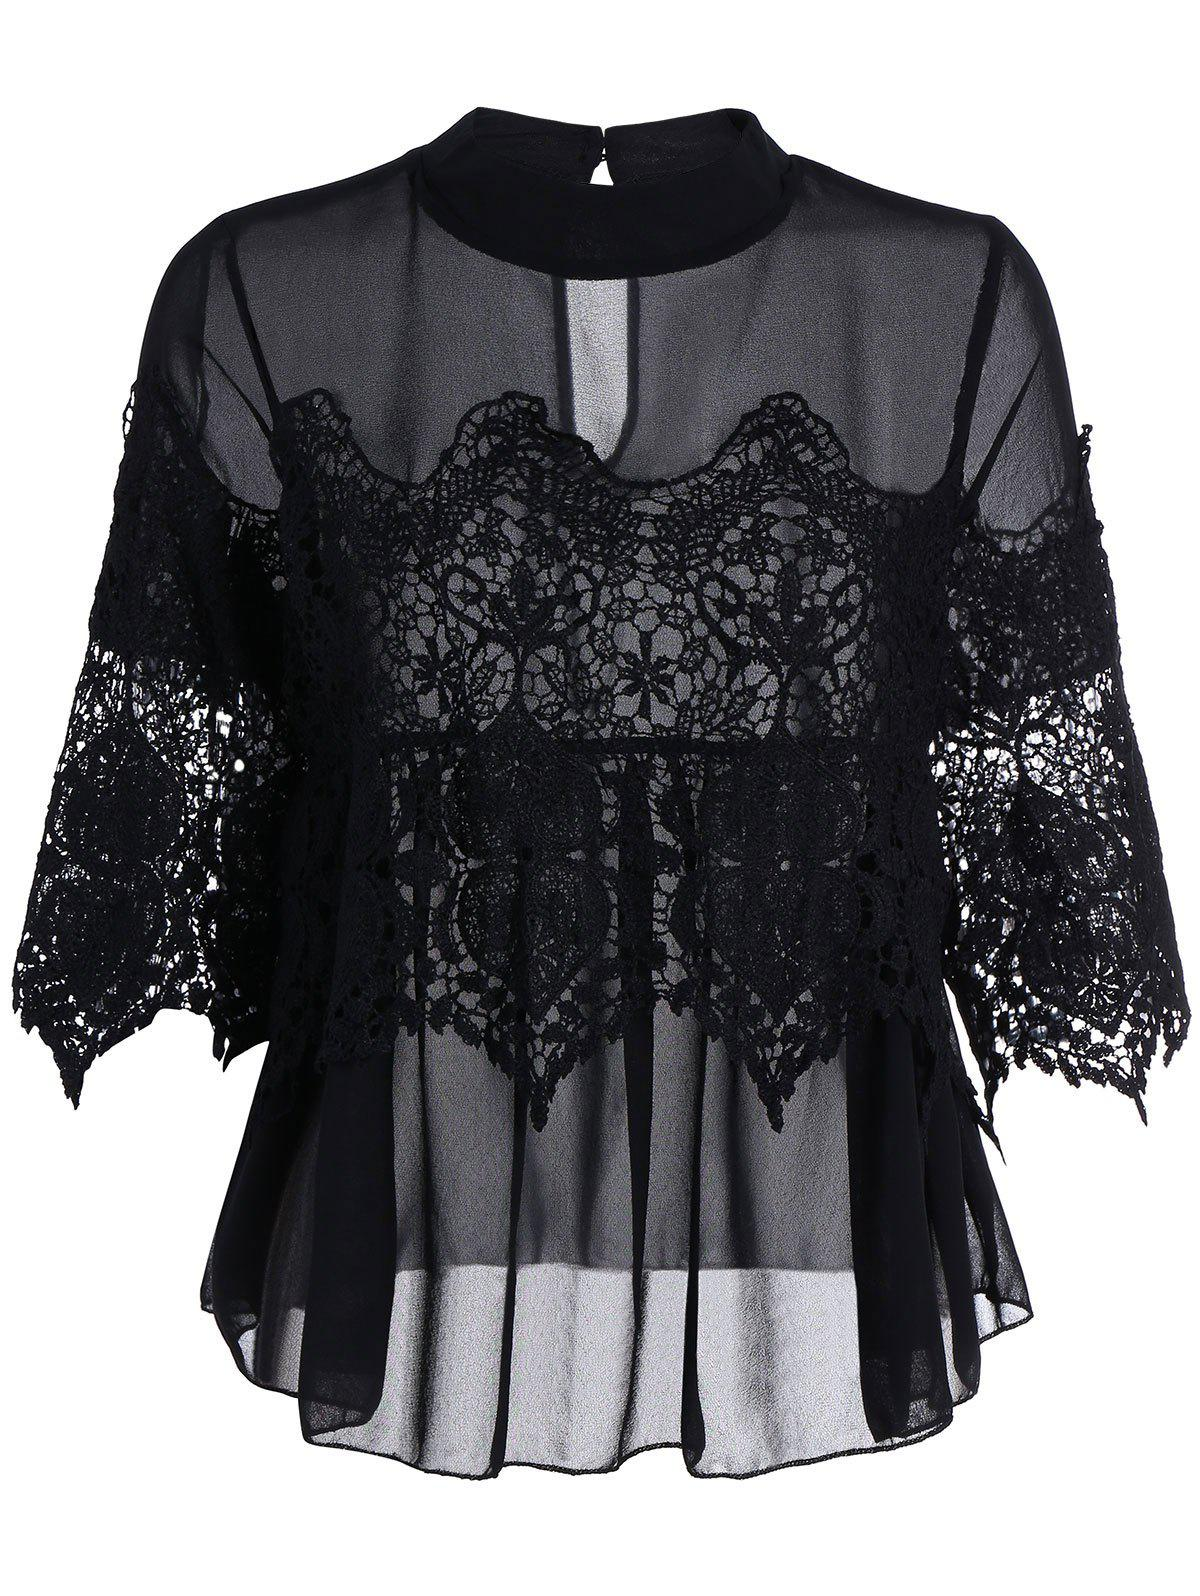 Discount See Thru Lace Insert Chiffon Top